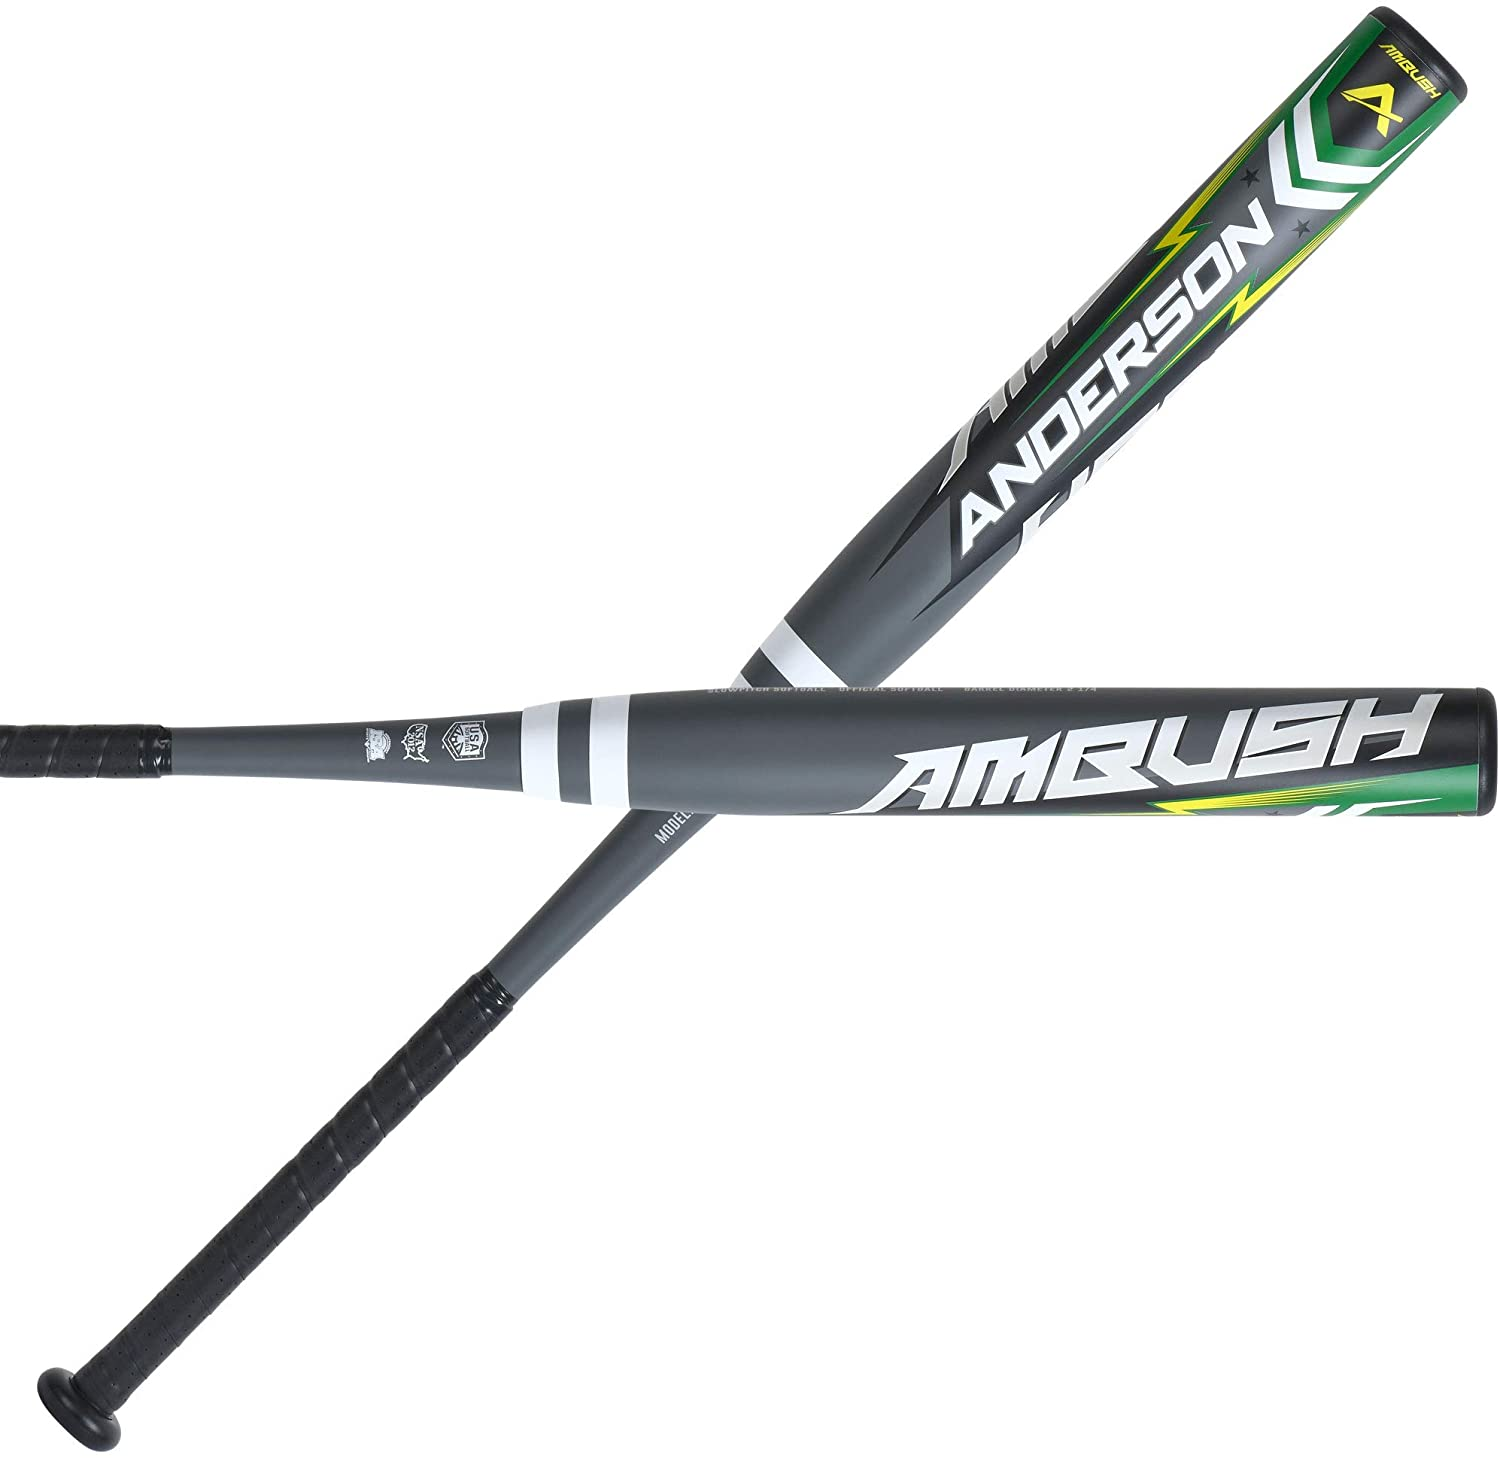 anderson-ambush-2021-composite-slowpitch-softball-bat-34-inch-28-oz 0110533-3428 Anderson  Anderson Rocketech has been dominating the double wall alloy slowpitch market.